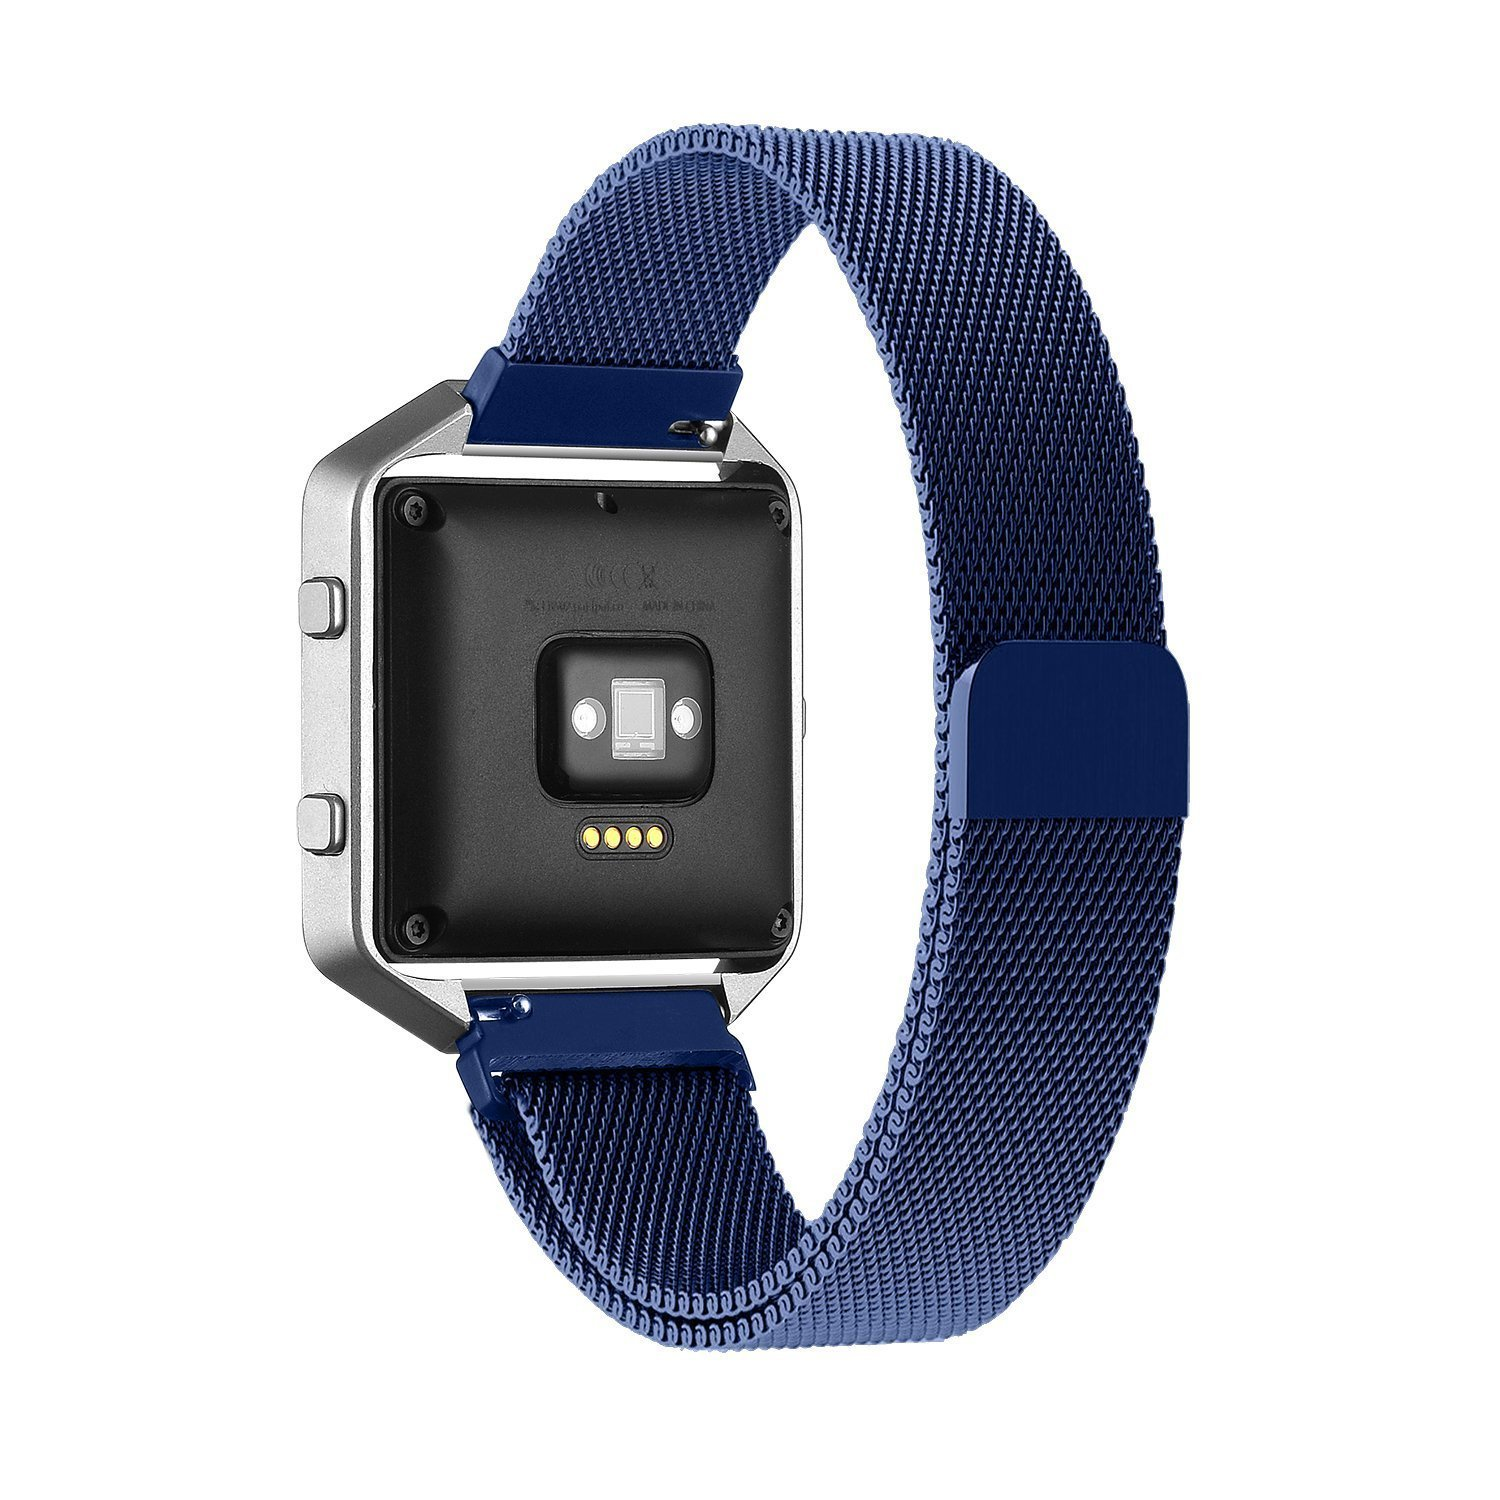 Fitbit Blaze Accessory Band, Large(6.3-9.1 in),Oitom Milanese loop stailess steel Bracelet Strap for Fitbit Blaze Smart Fitness Watch, Black, Silver, Large with unique Magnet lock (Blue)